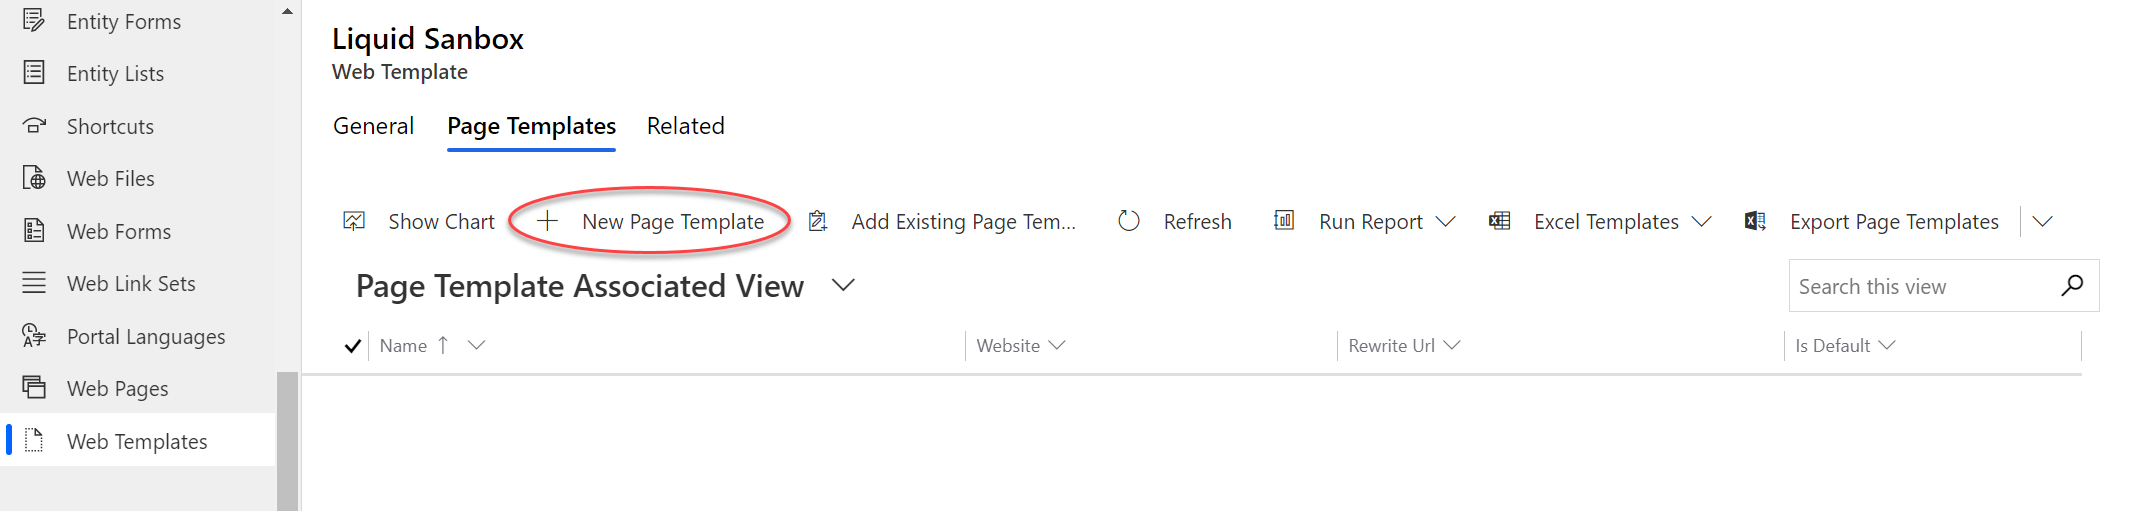 Screenshot showing New Page Template option from Web Template